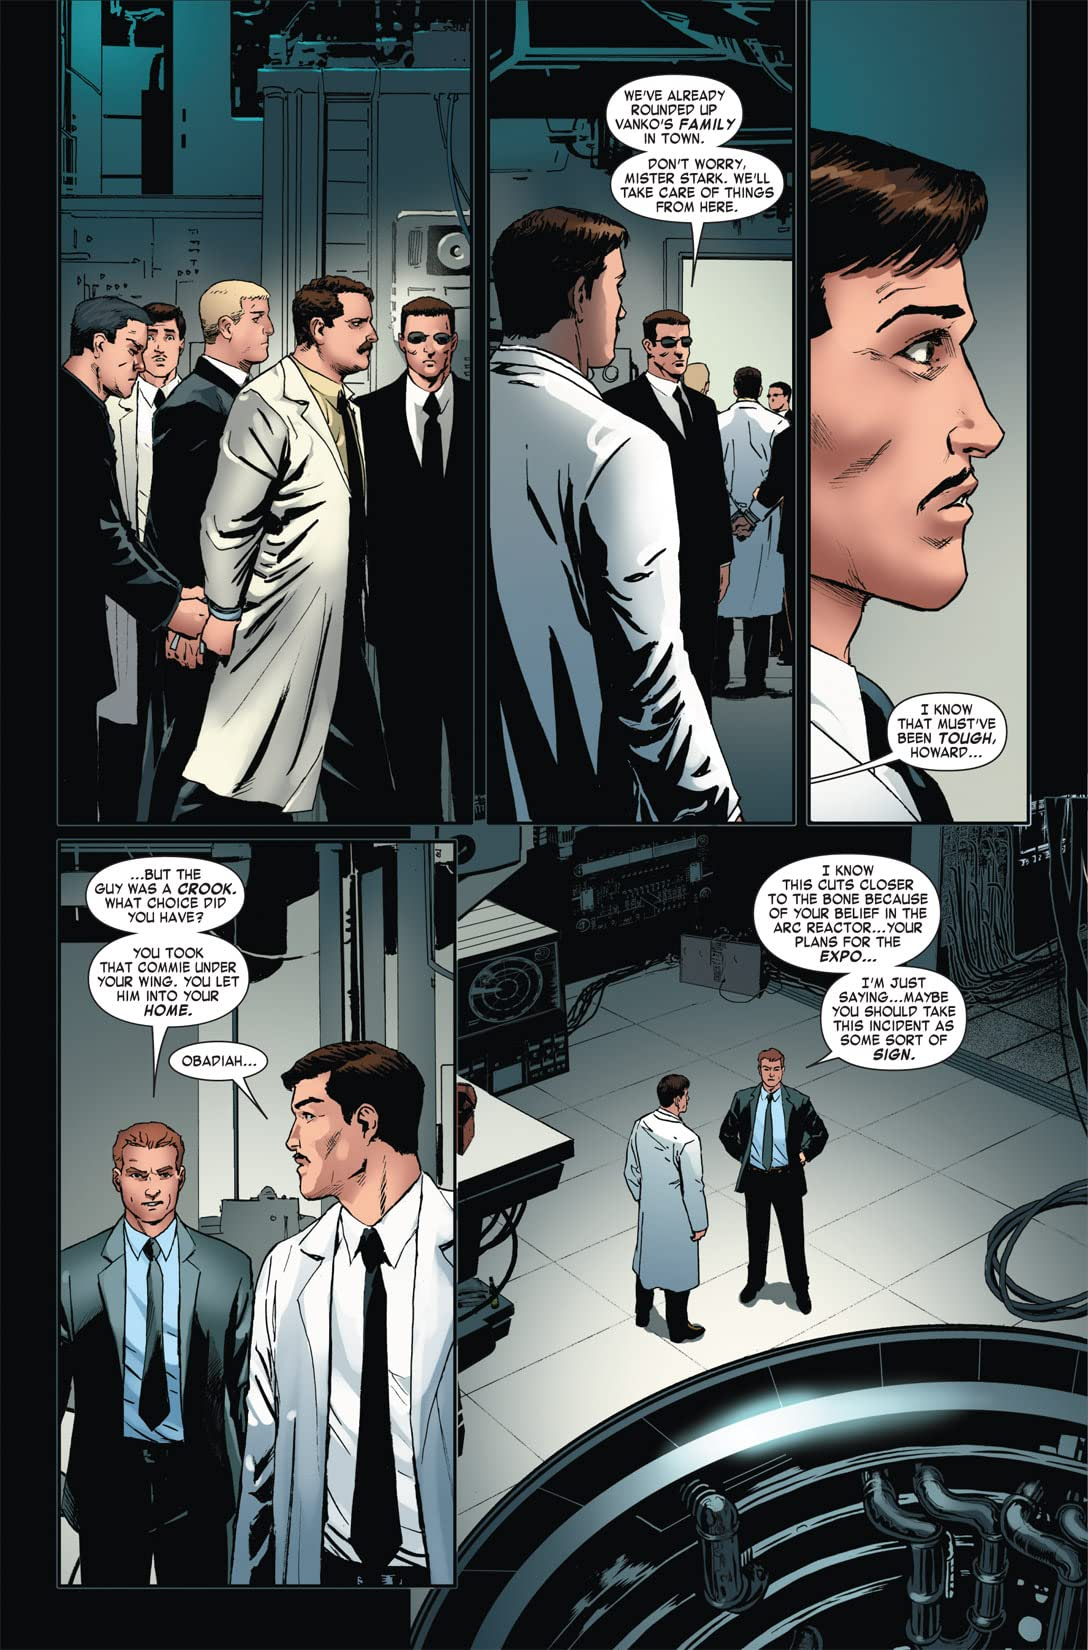 Iron Man 2: Public Identity #2 (of 3)